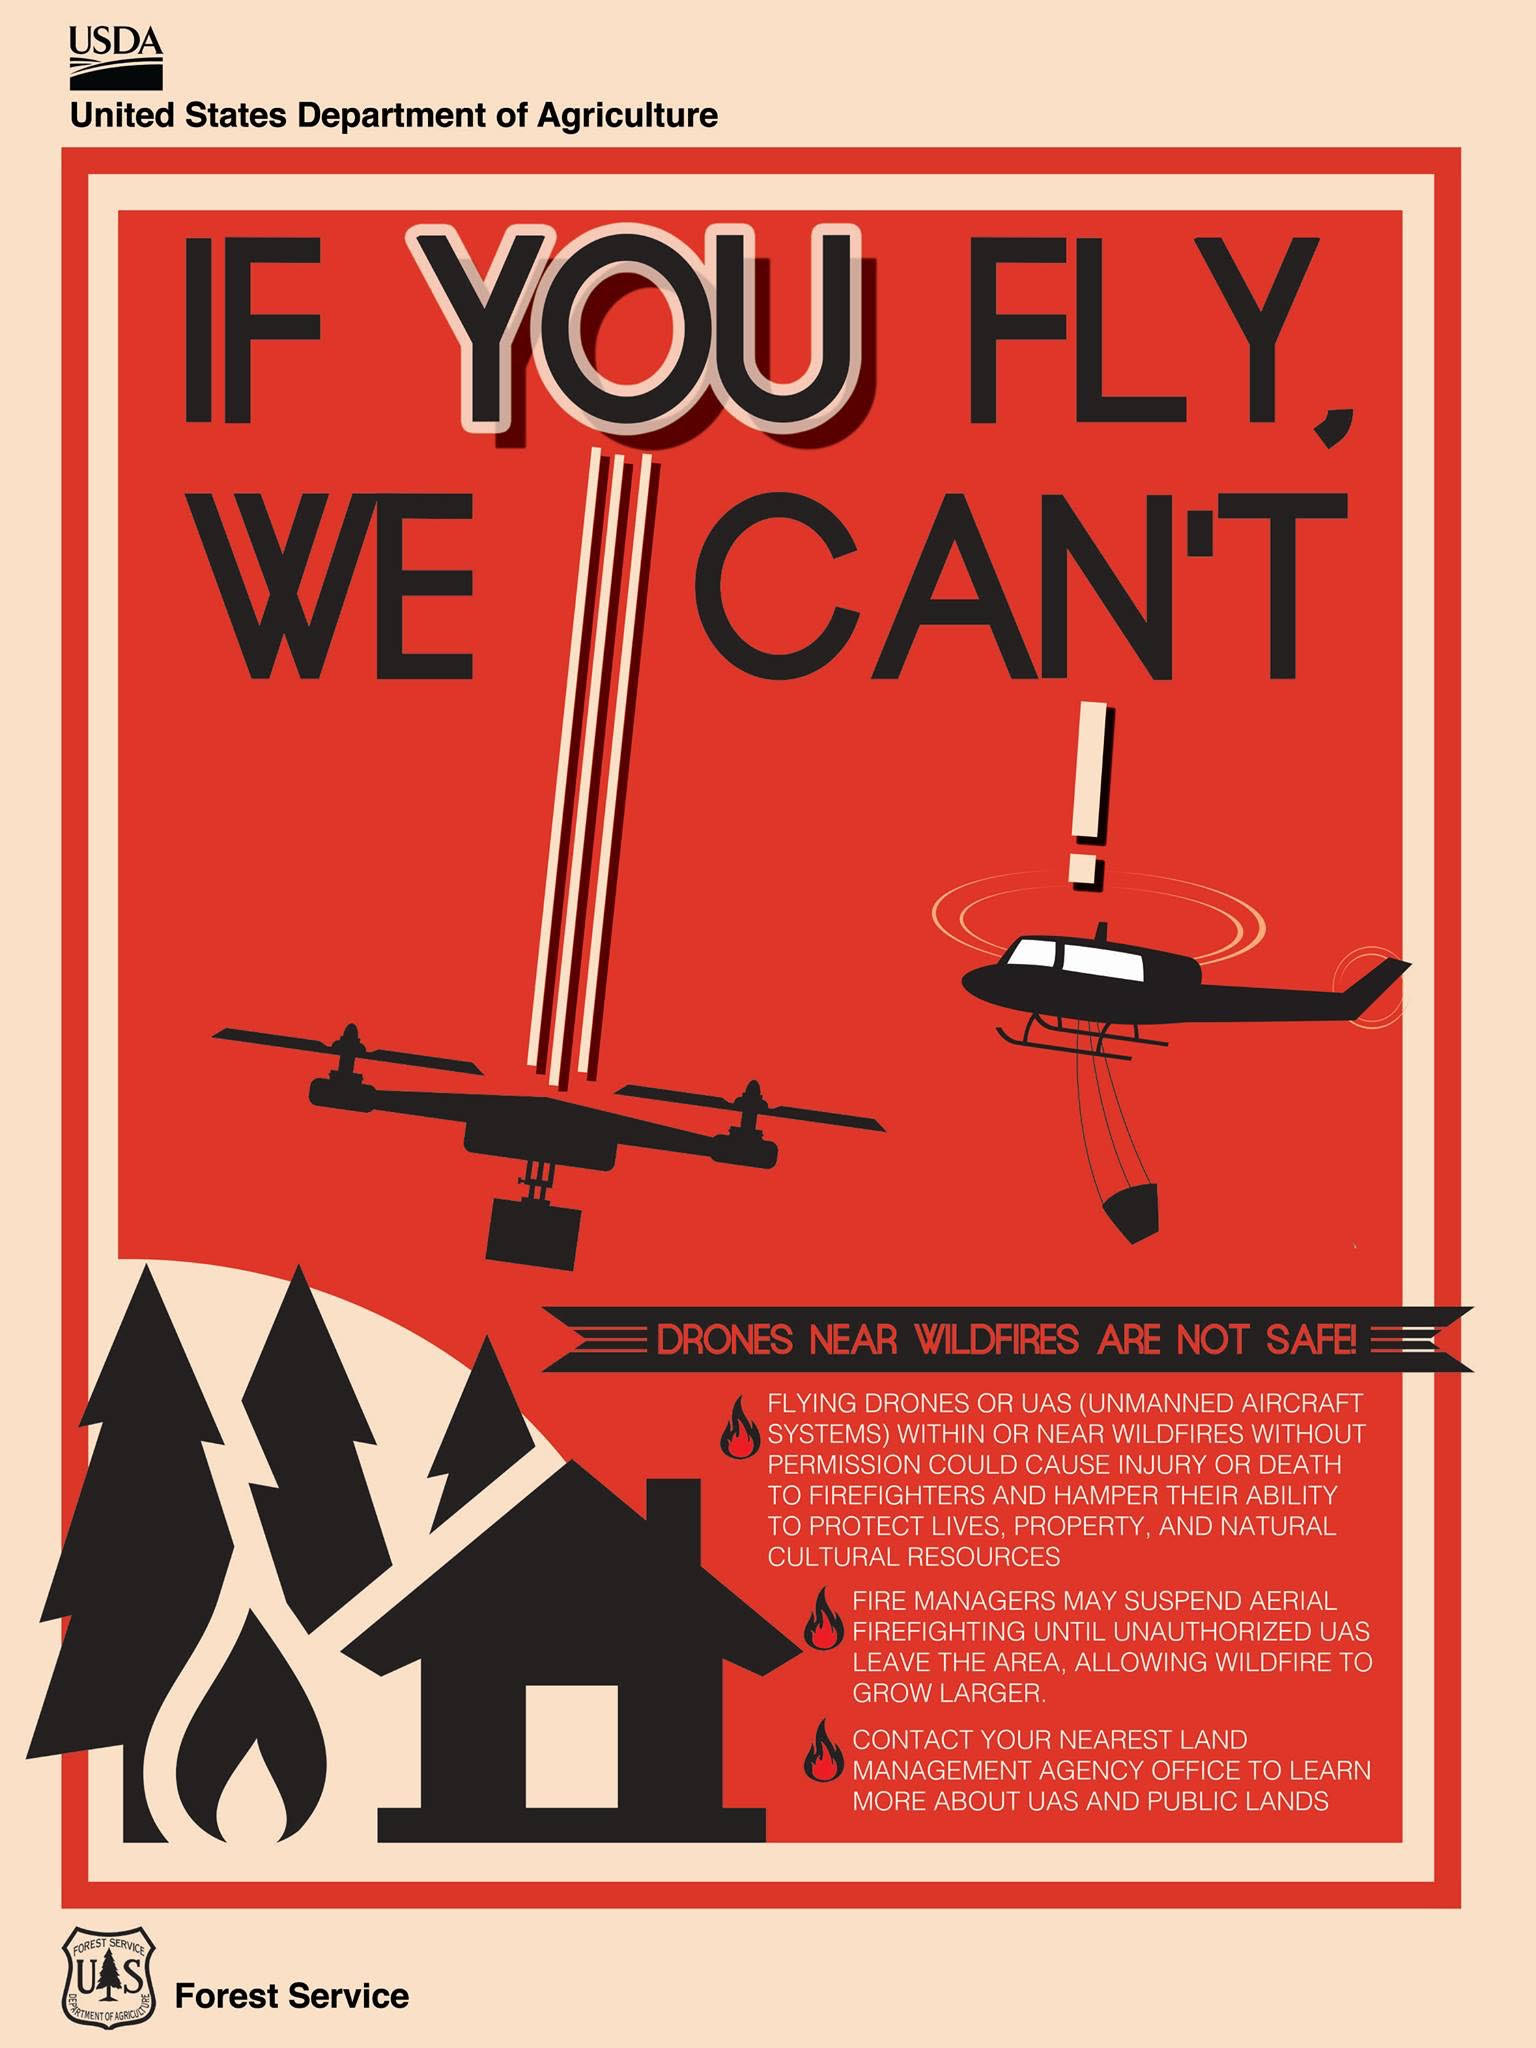 Flying drones near wildfires are not safe | Flyer courtesy of United States Department of Agriculture, St. George News | Click on flyer to enlarge